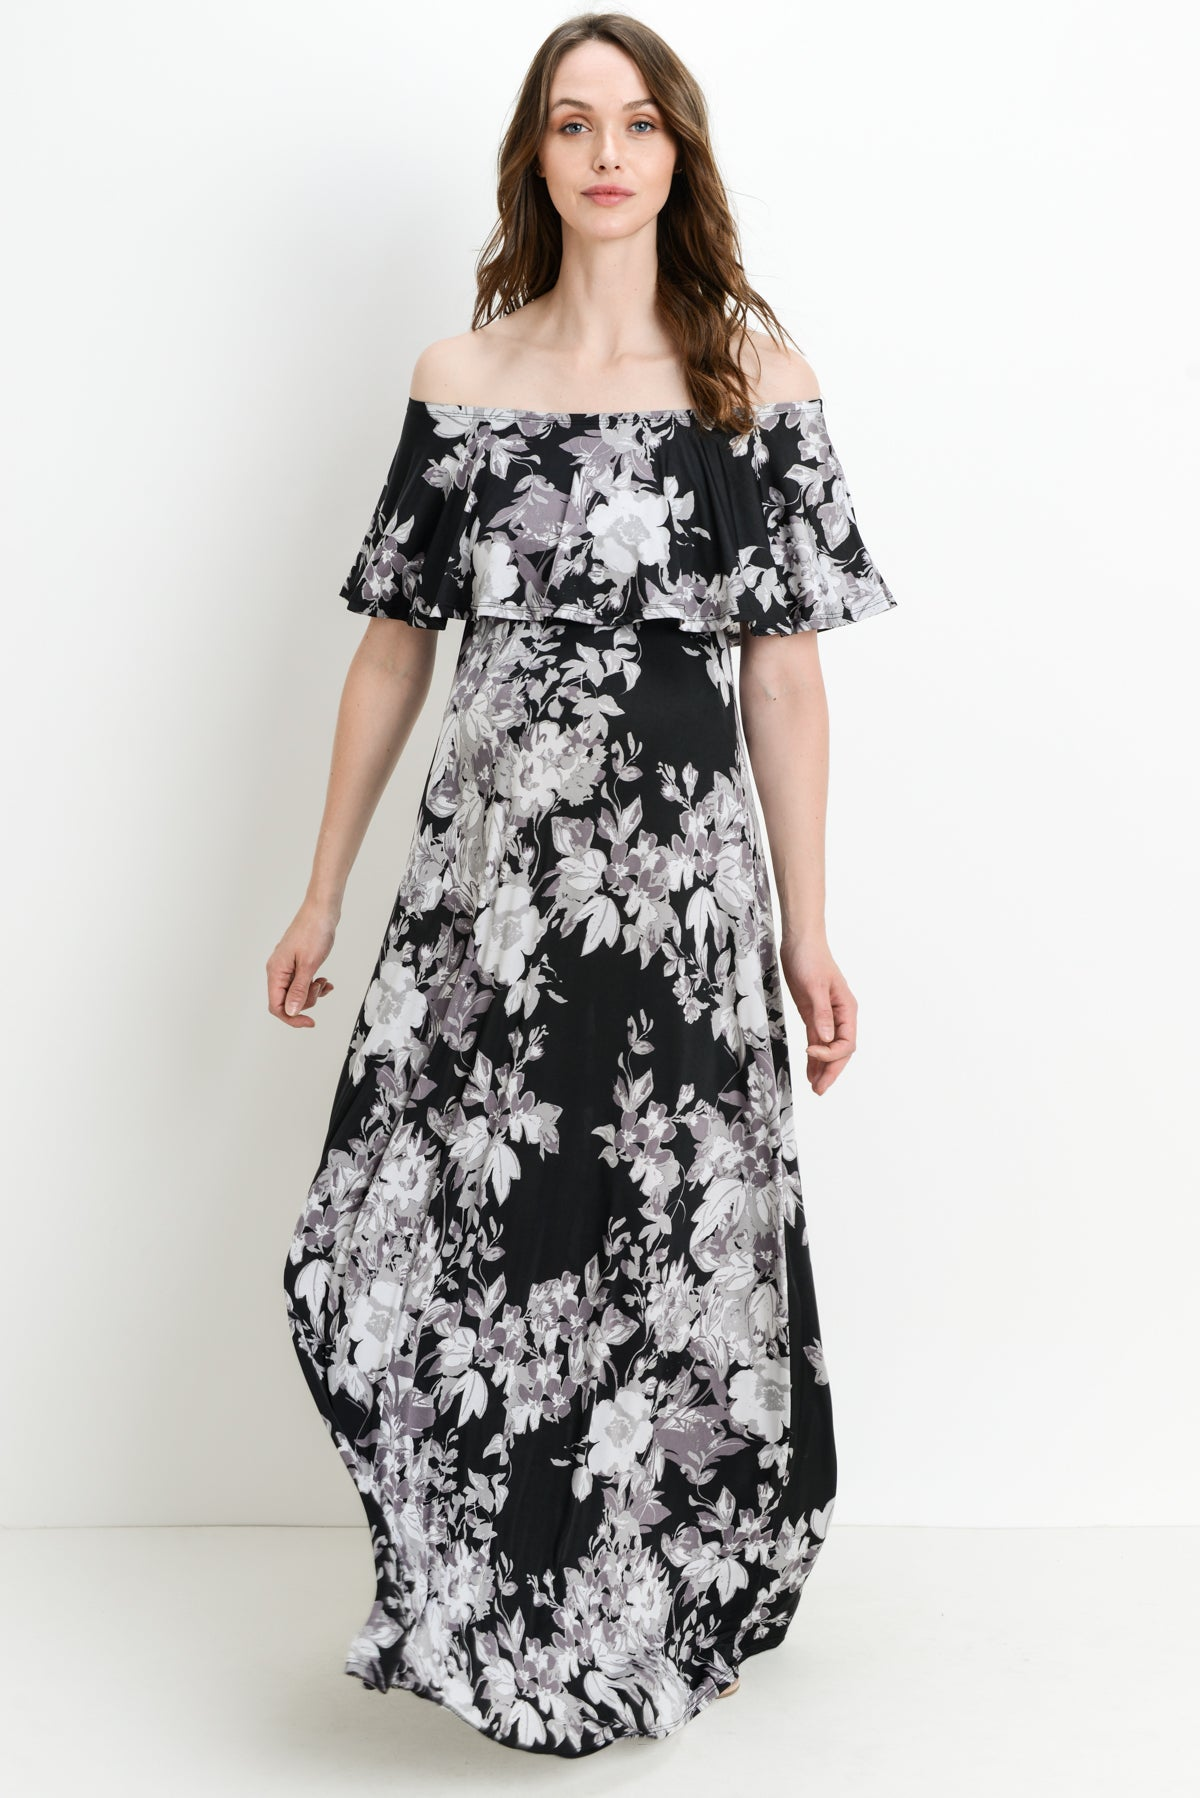 Black Floral Ruffle Off Shoulder Maternity Maxi Dress